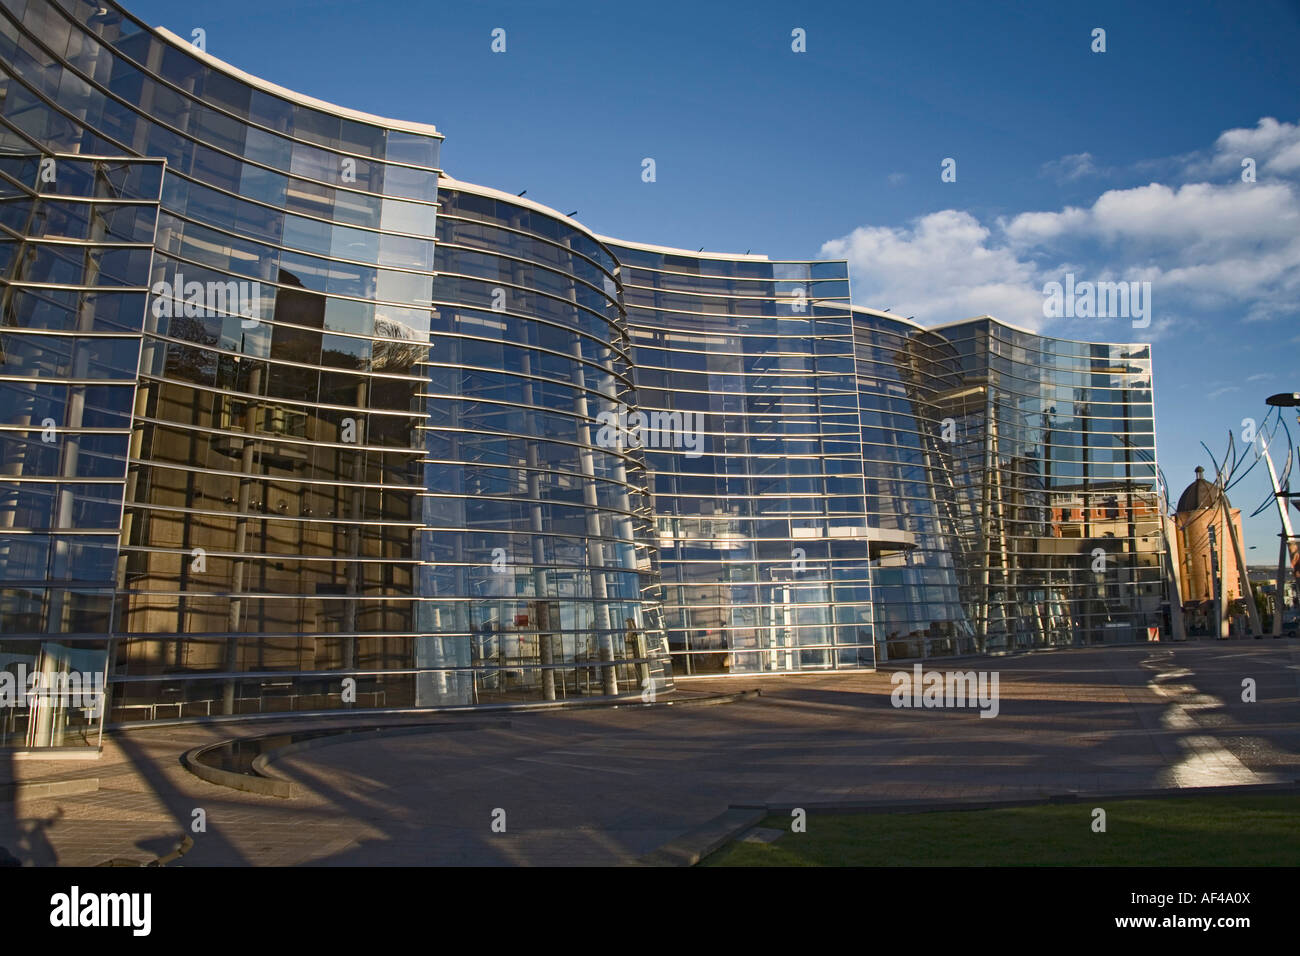 CHRISTCHURCH SOUTH ISLAND NEW ZEALAND May The immense glass and metal Christchurch Art Gallery building - Stock Image